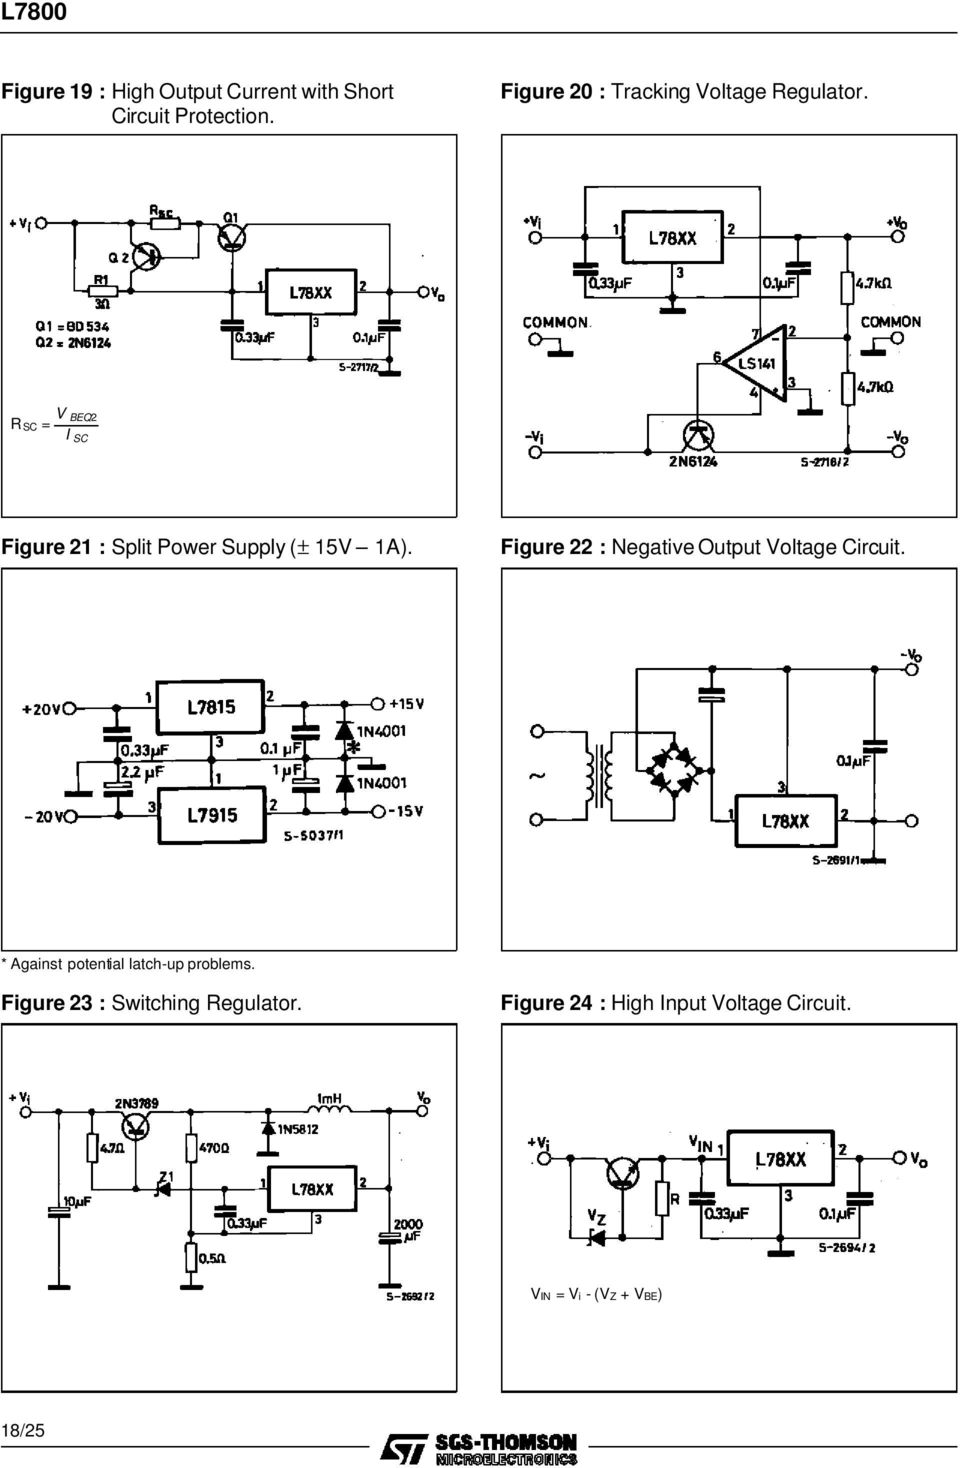 L7800 Series Positive Voltage Regulators Pdf Negative Power Supply Circuit R Sc V Beq2 I Figure 21 Split 15v